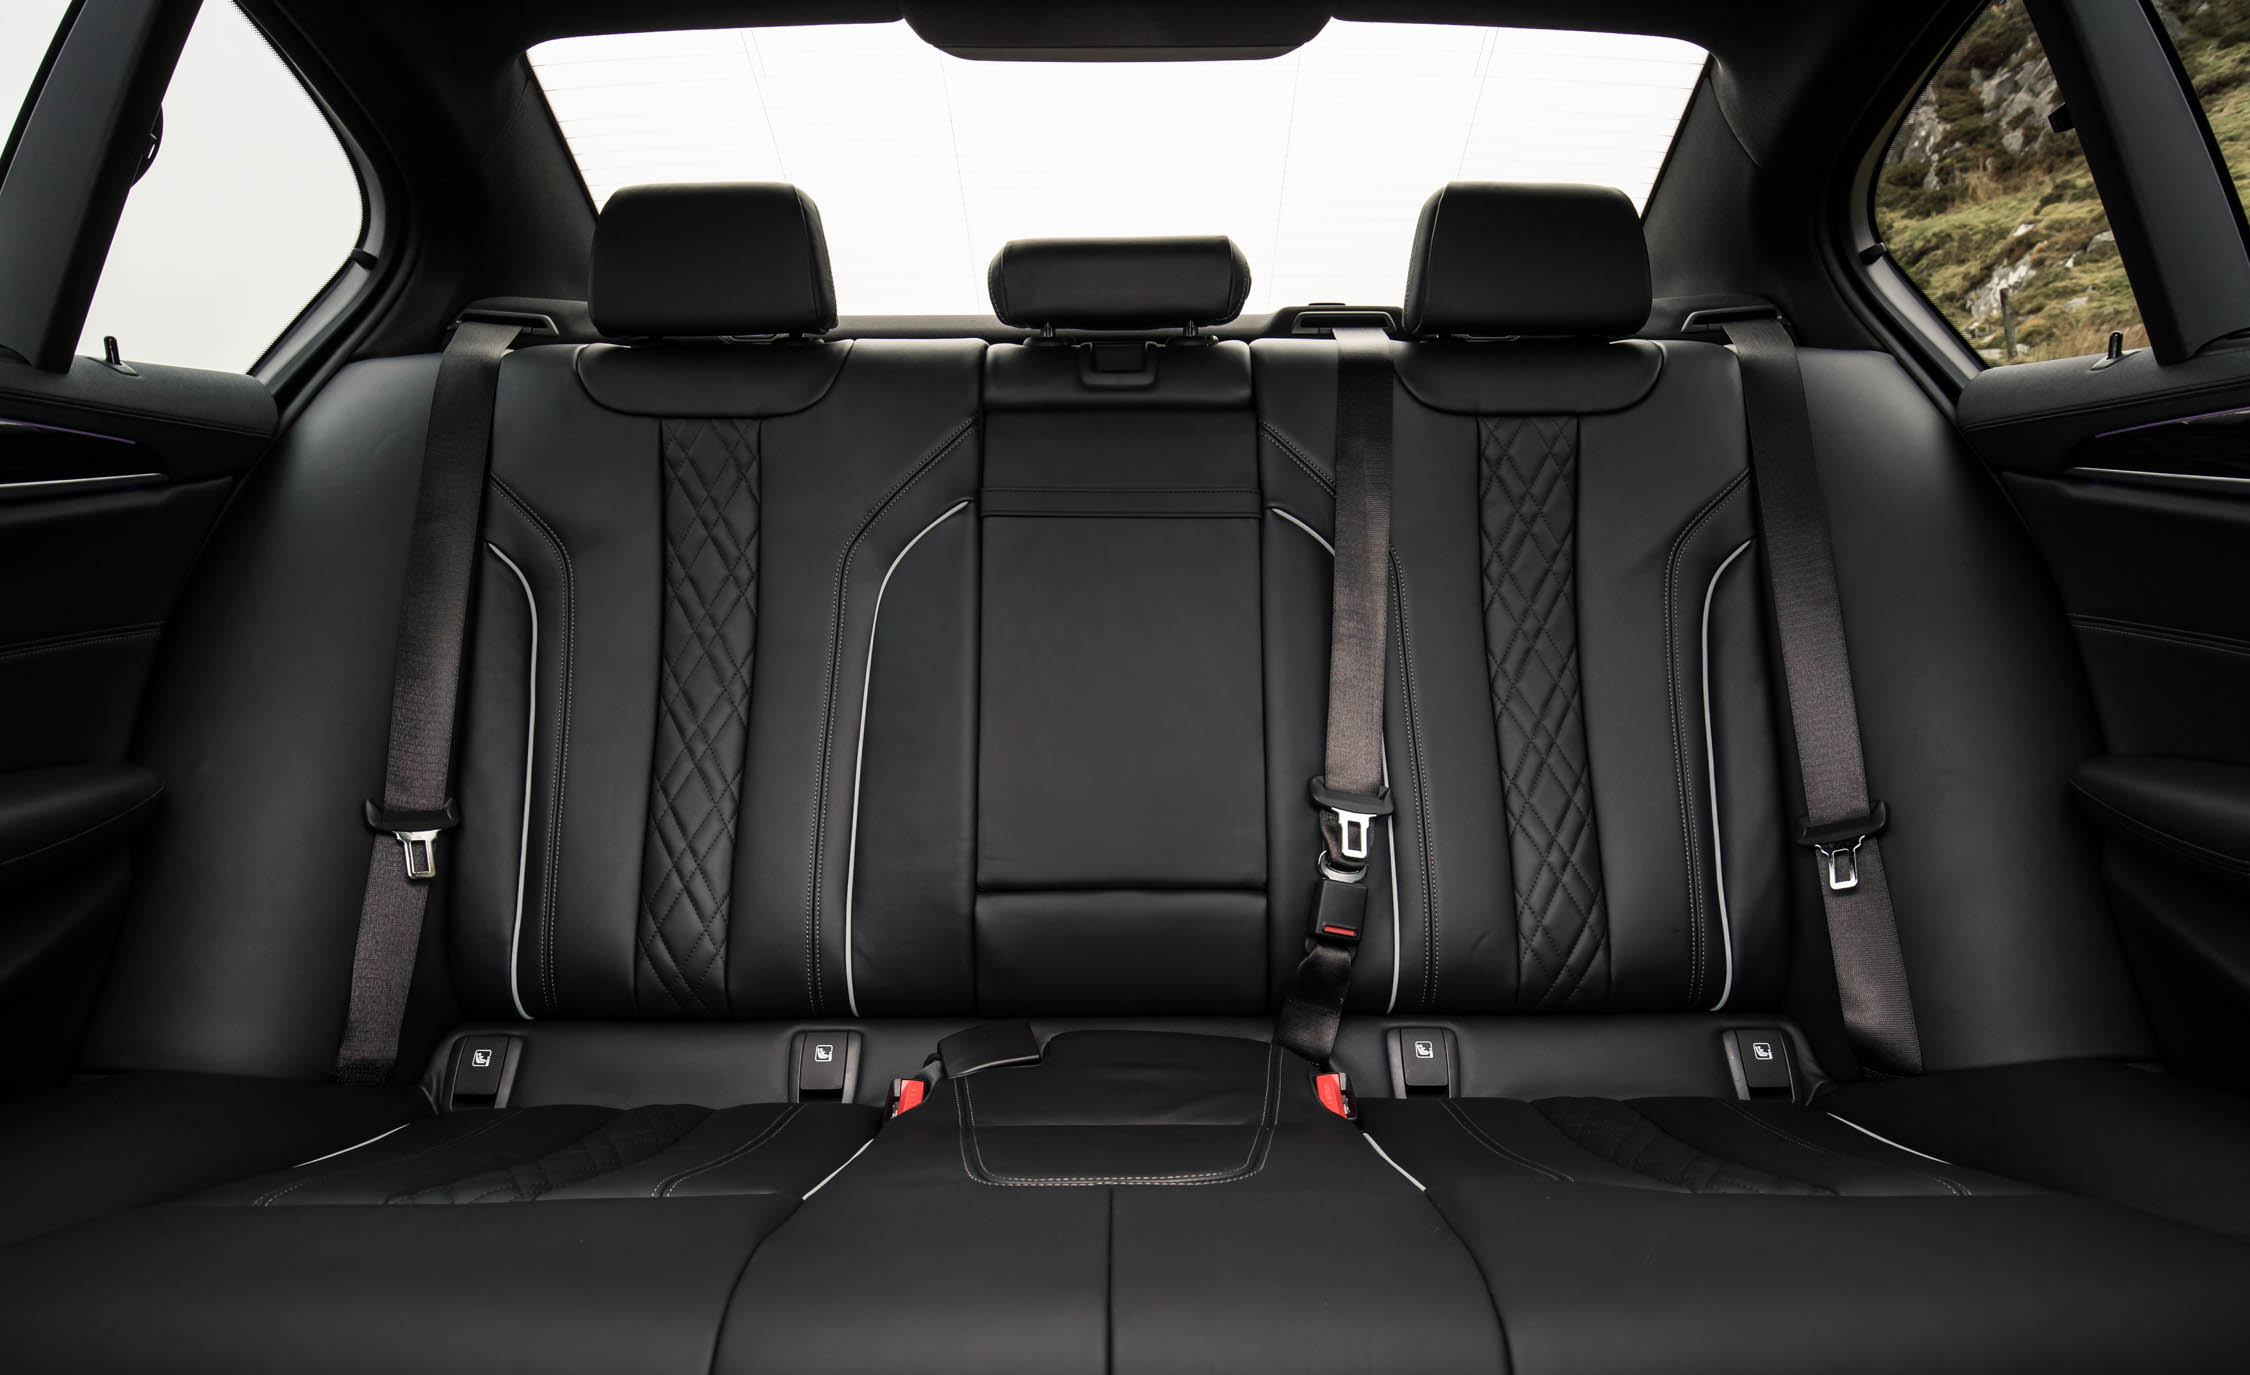 2017 BMW 530d Interior Seats Rear (View 29 of 32)